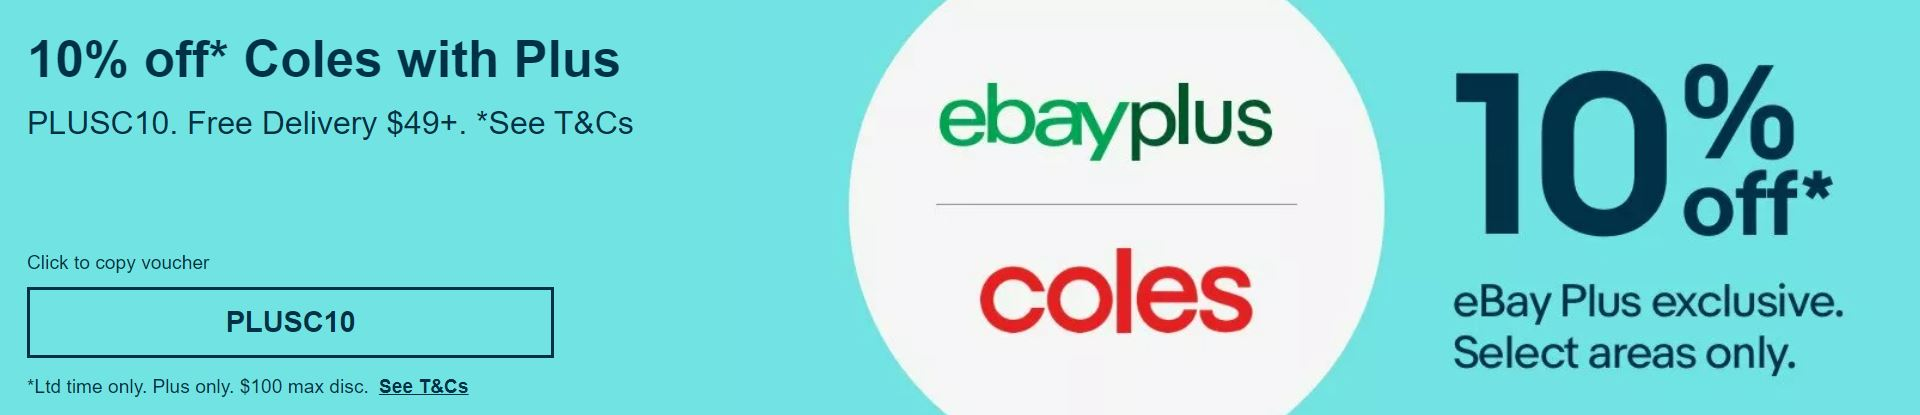 10% off Coles with eBay Plus @ Coles eBay [No minimum Spend, Free Delivery $49+, Max Disc $100]